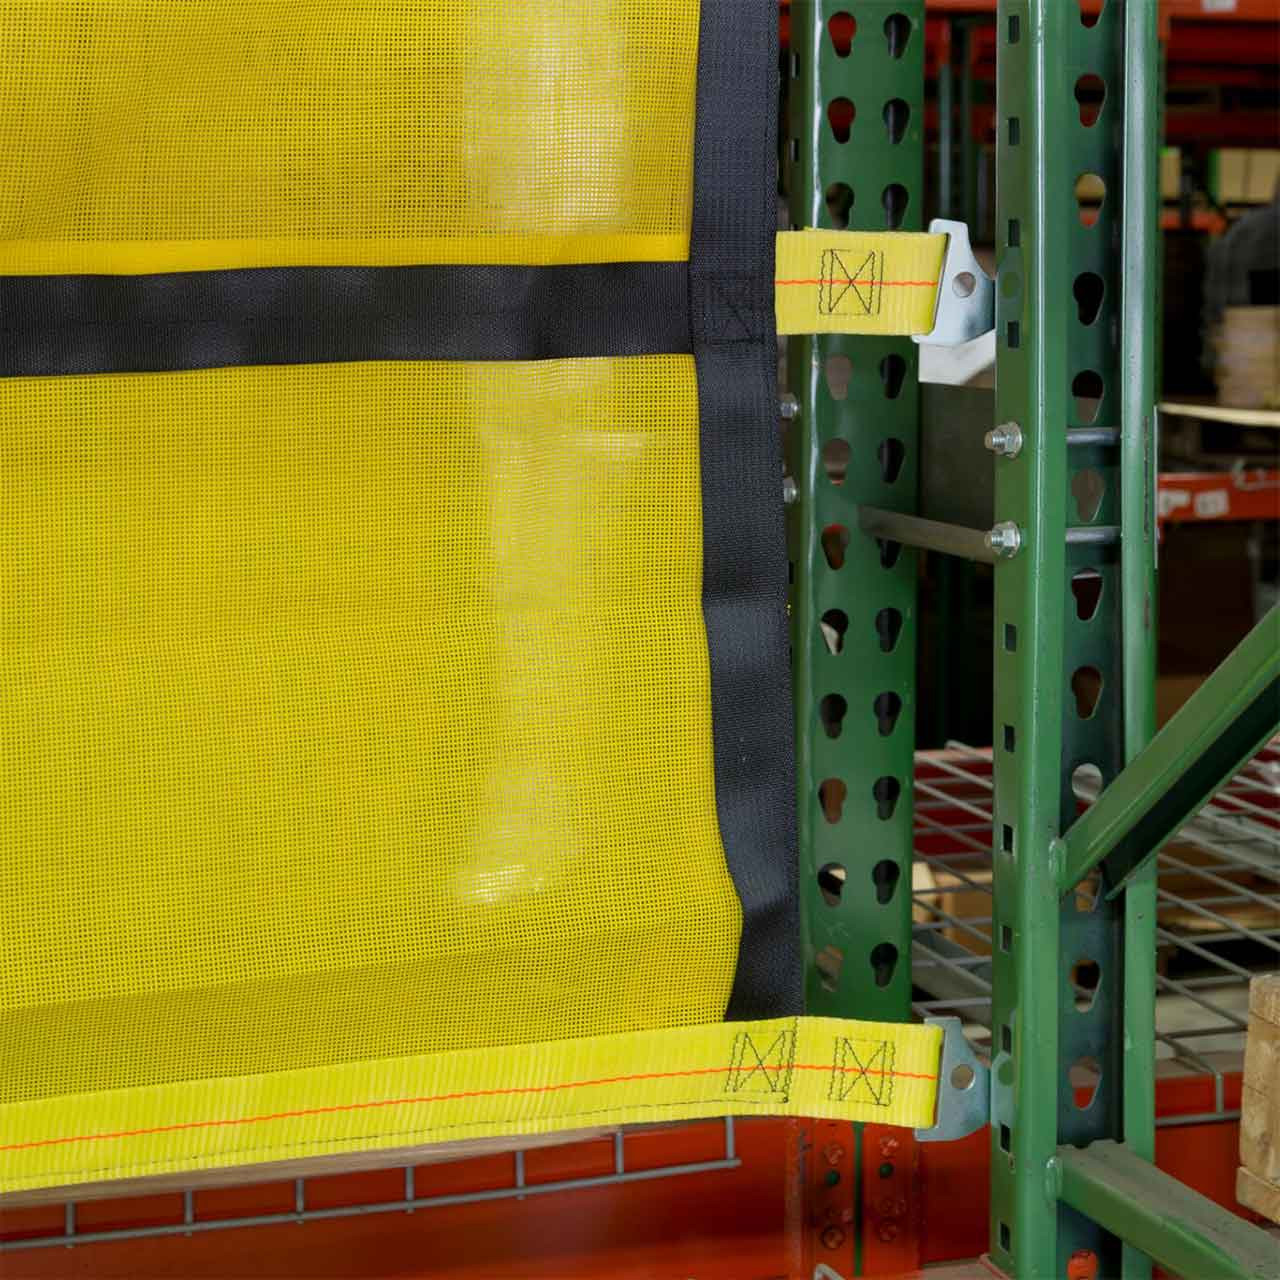 Made of strong, reinforced webbing to keep items on the pallet racks